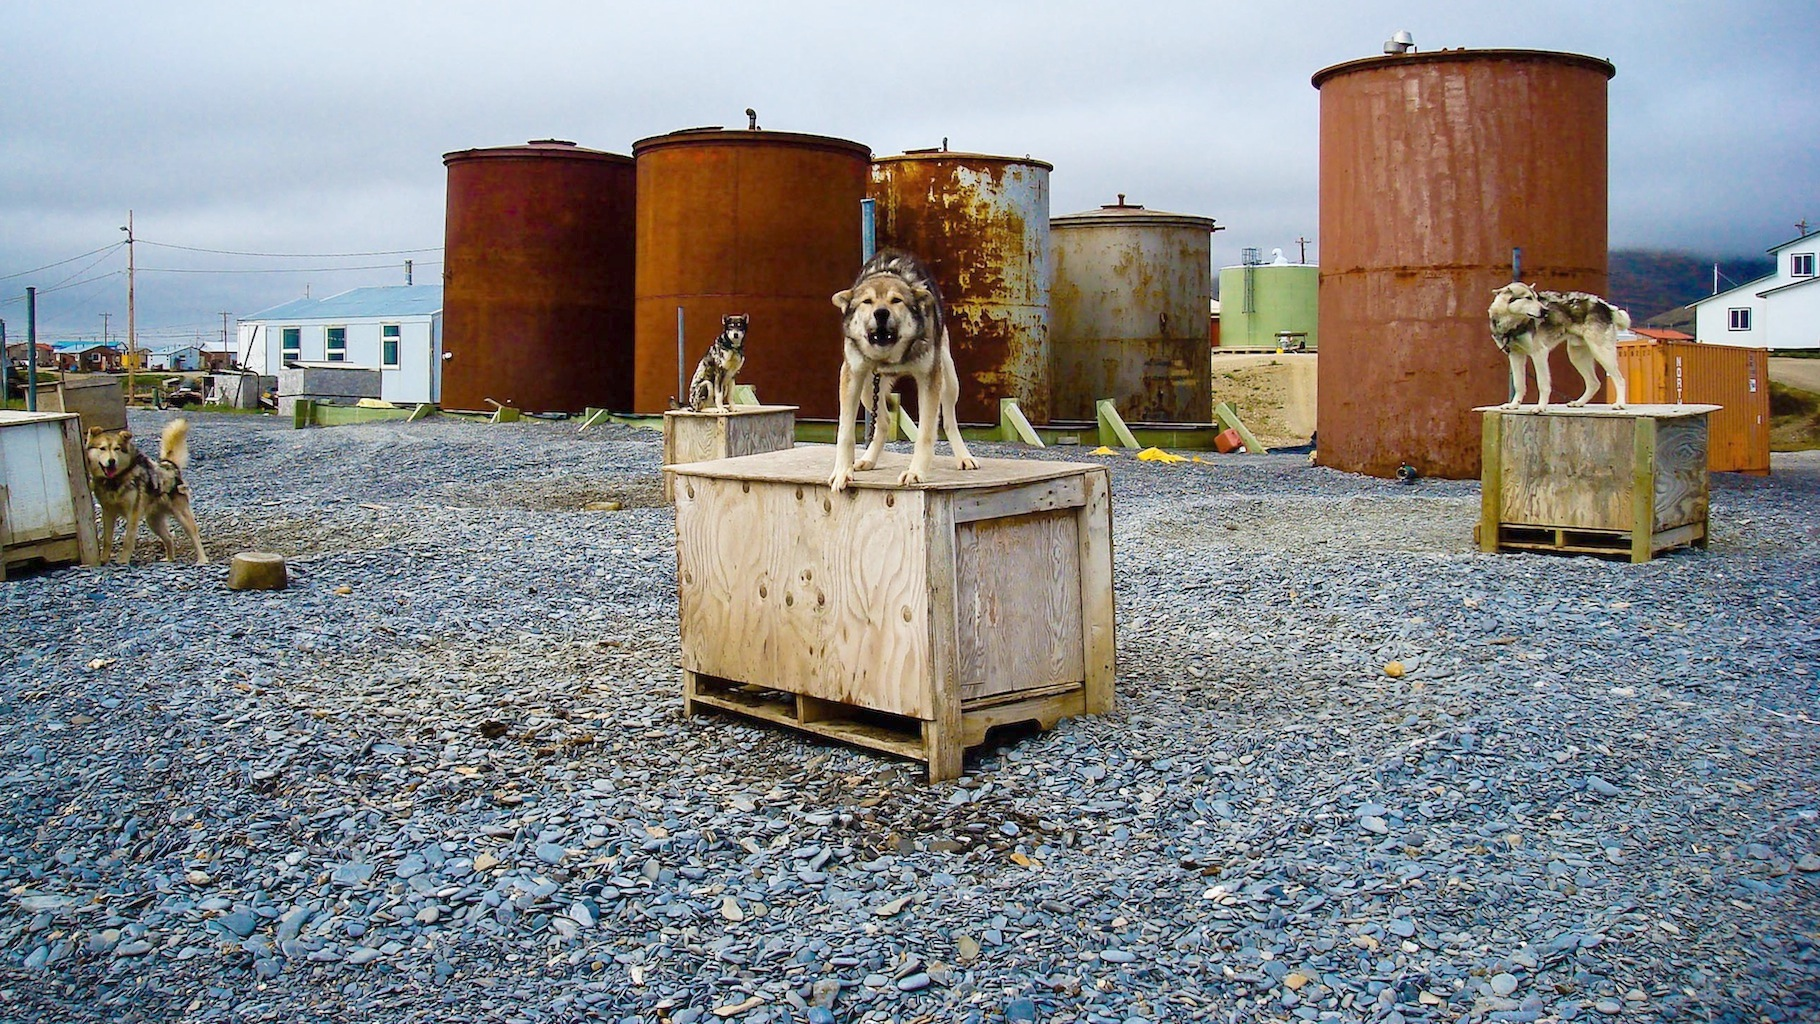 Alaska - Eskimo village on the Bering Sea with Sled Dogs.jpg